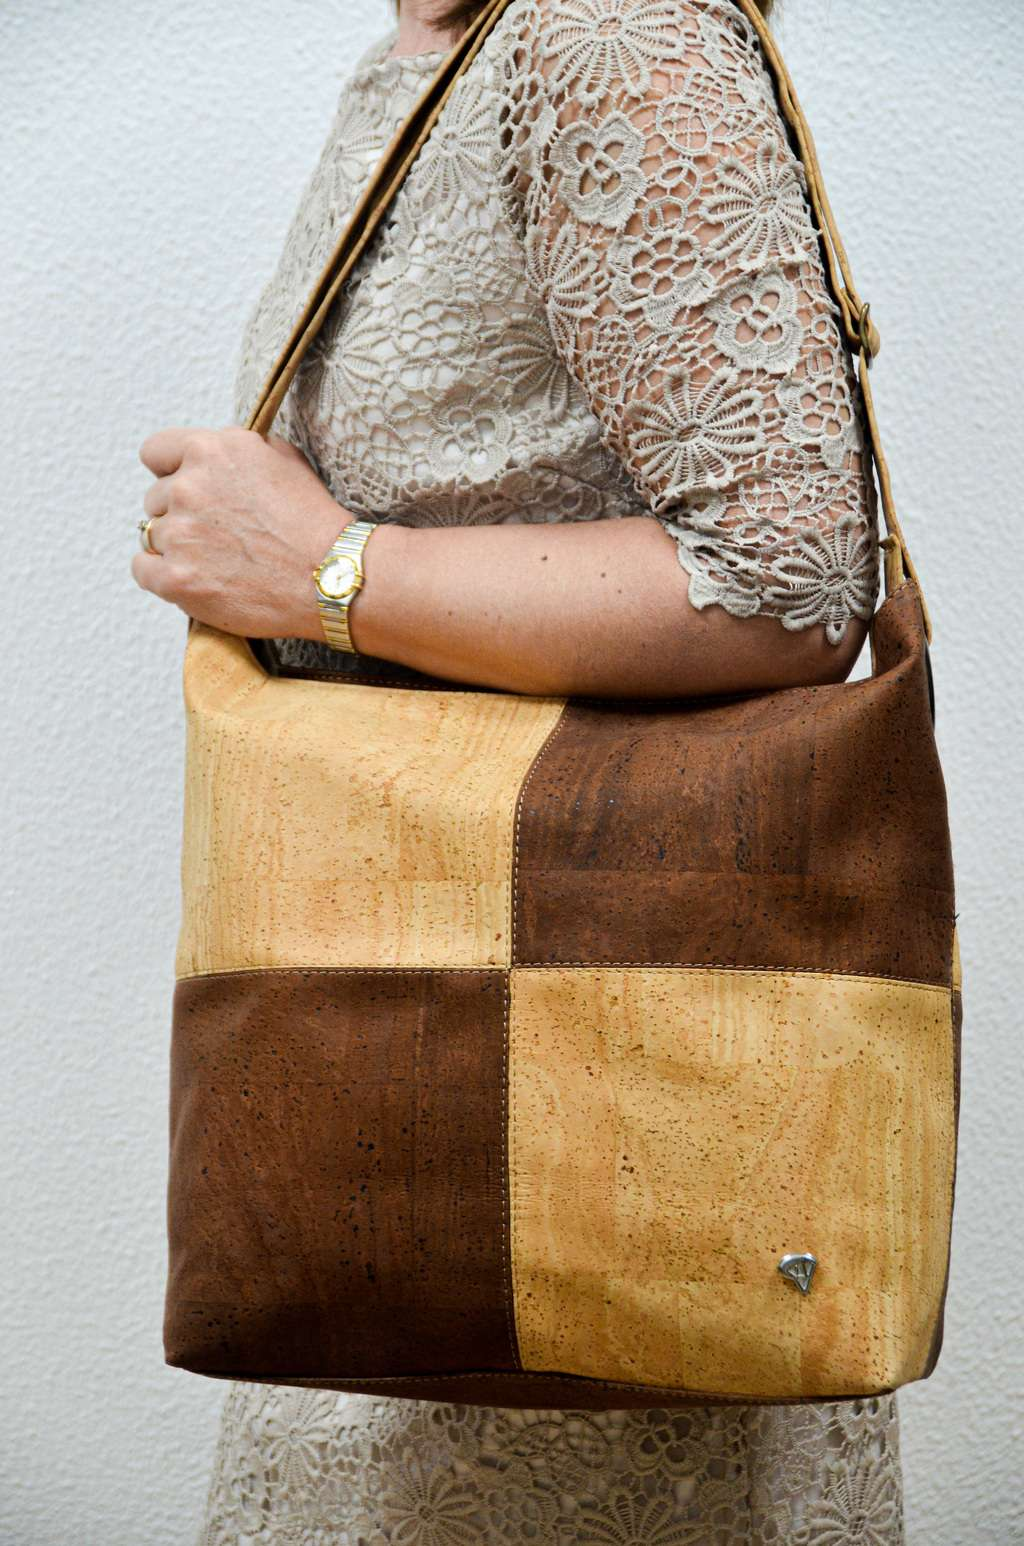 Women wearing a Brown Cork Handbag Matritium - CESARSCORK